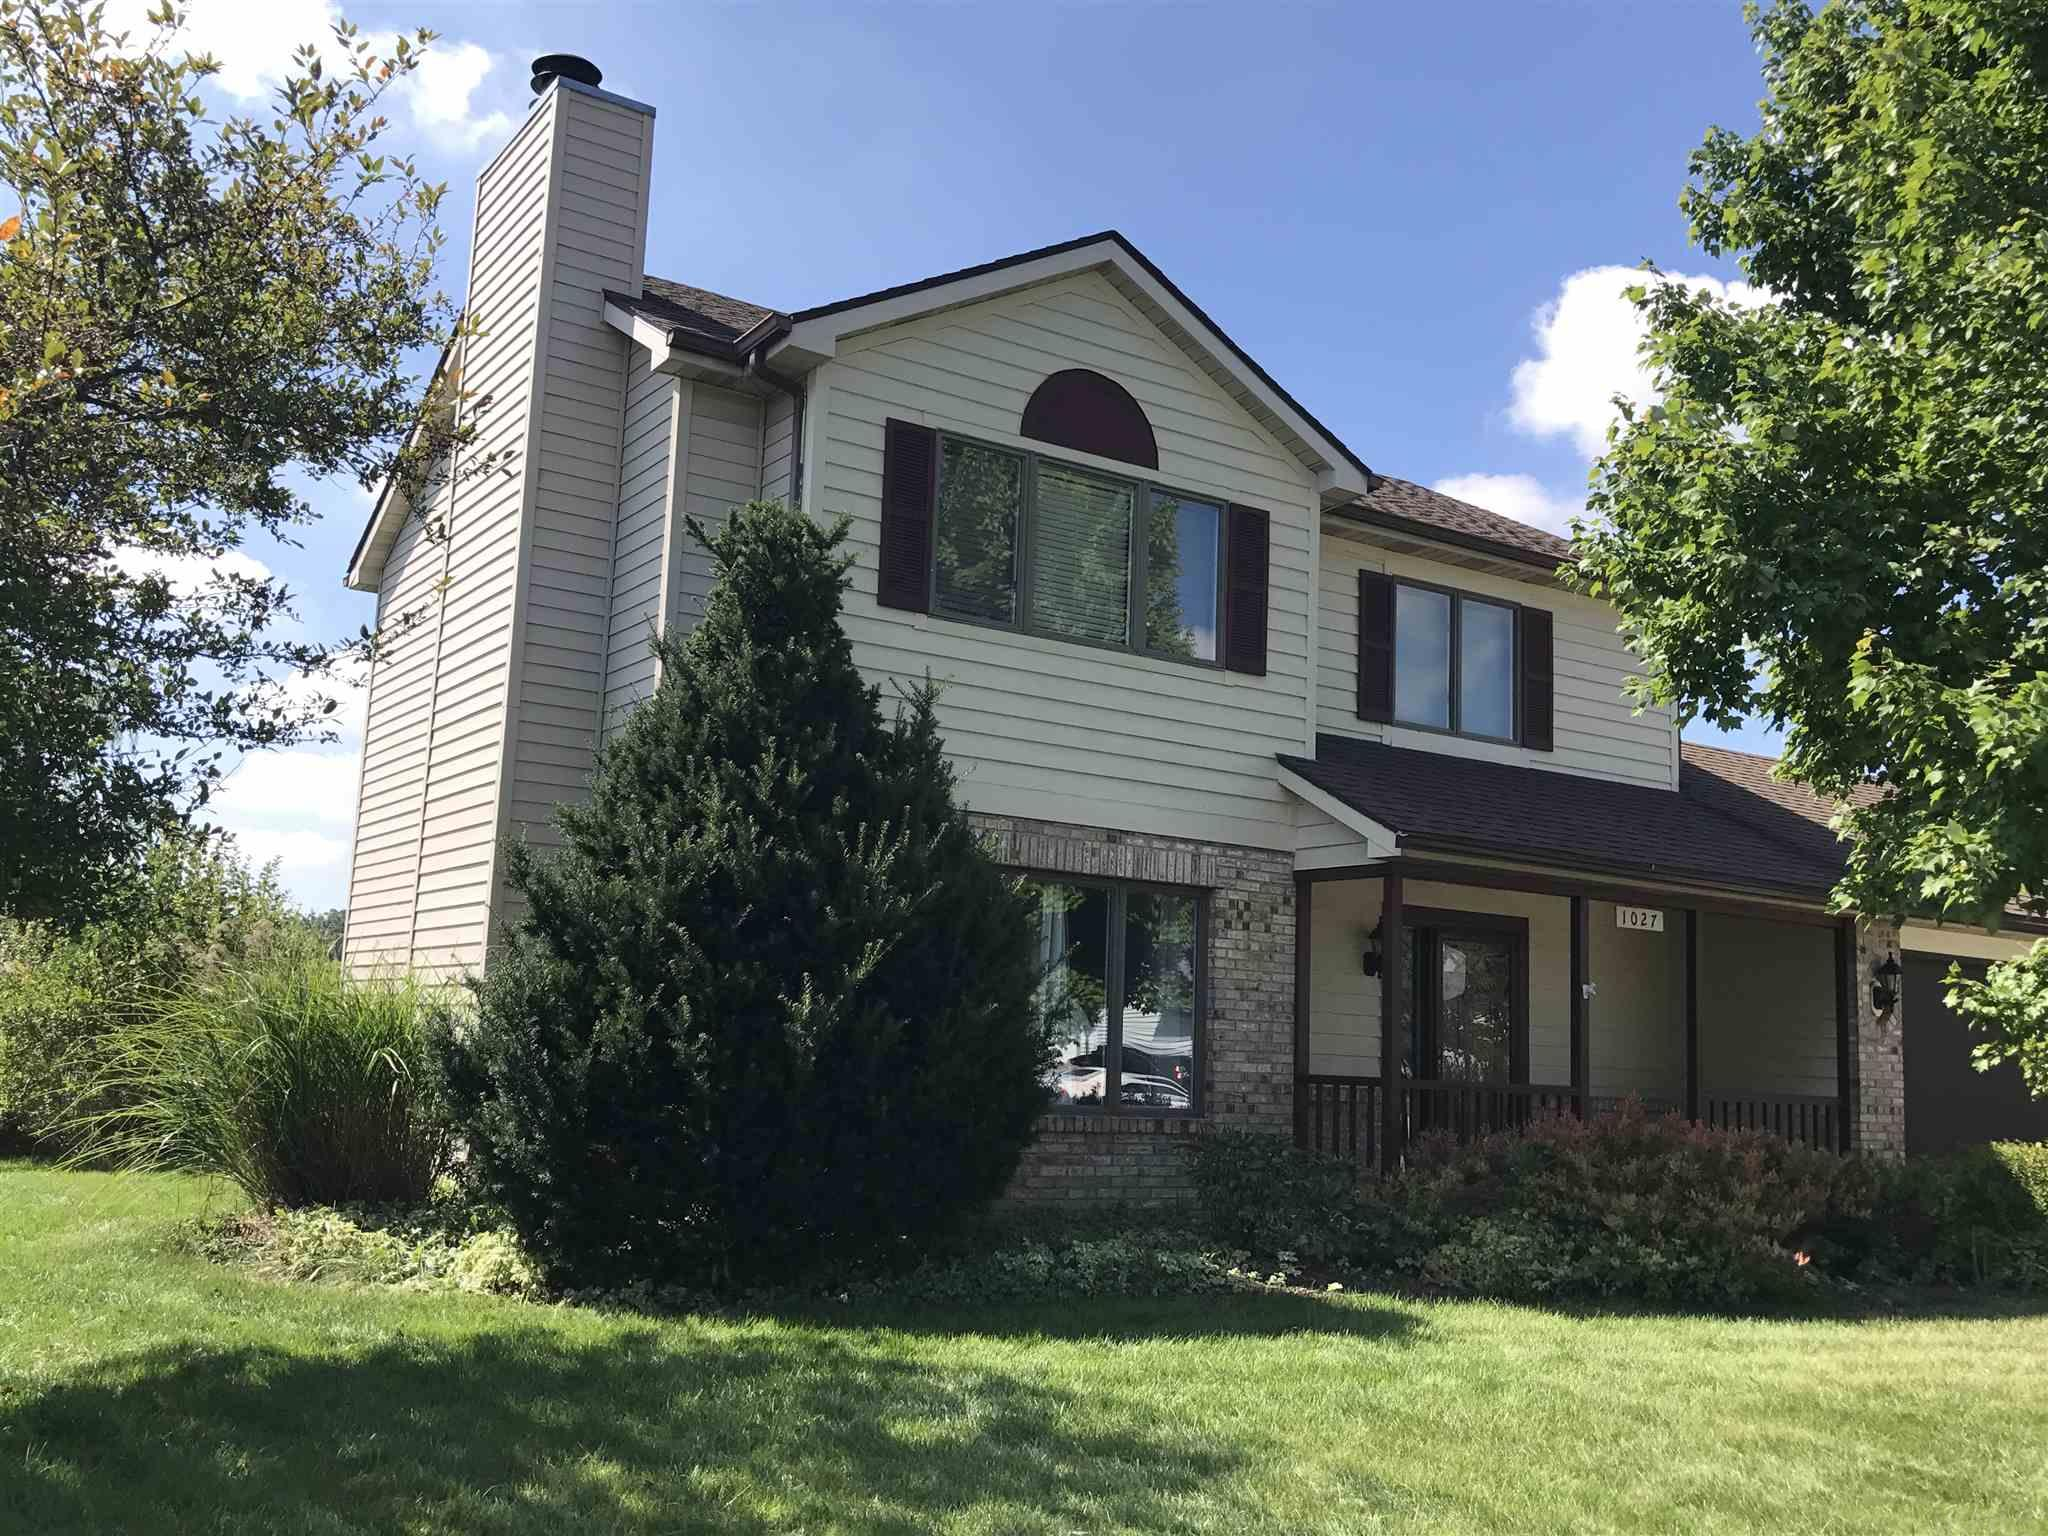 1027 Brittany, Allen County - Listing 201841922 | Mike Thomas ...